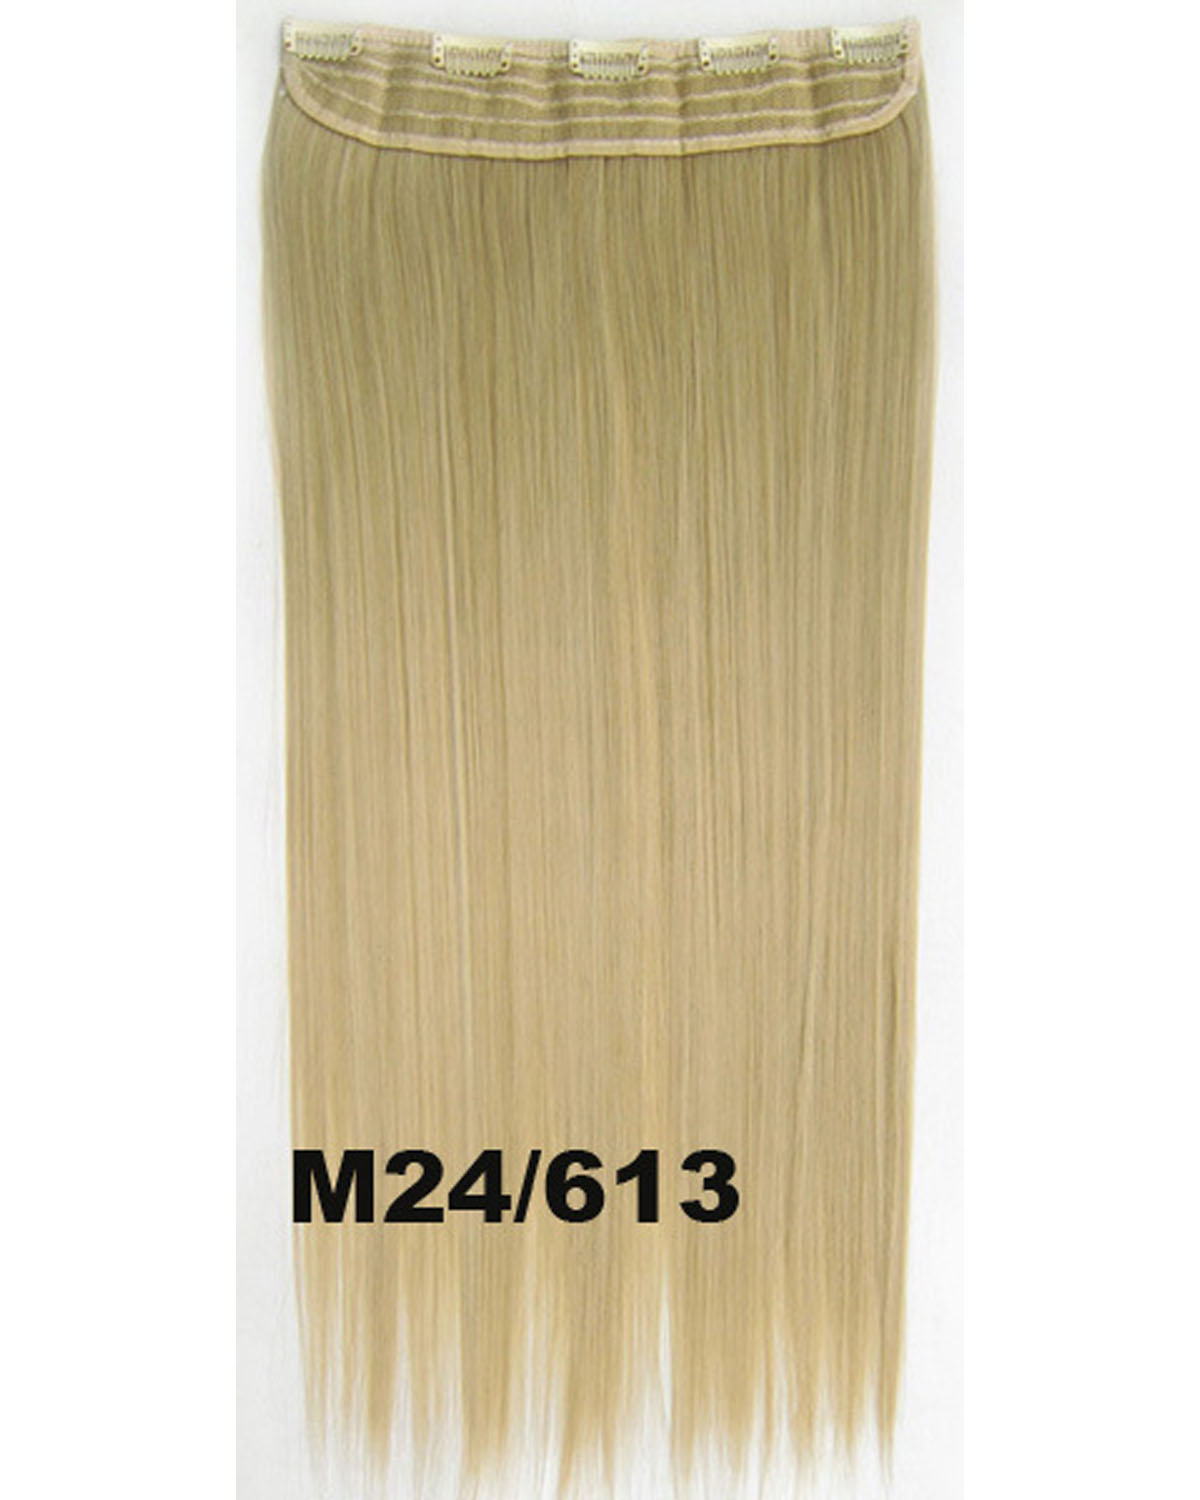 24 Inch Women Dramatic Straight Long One Piece 5 Clips Clip in Synthetic Hair Extension M24/613